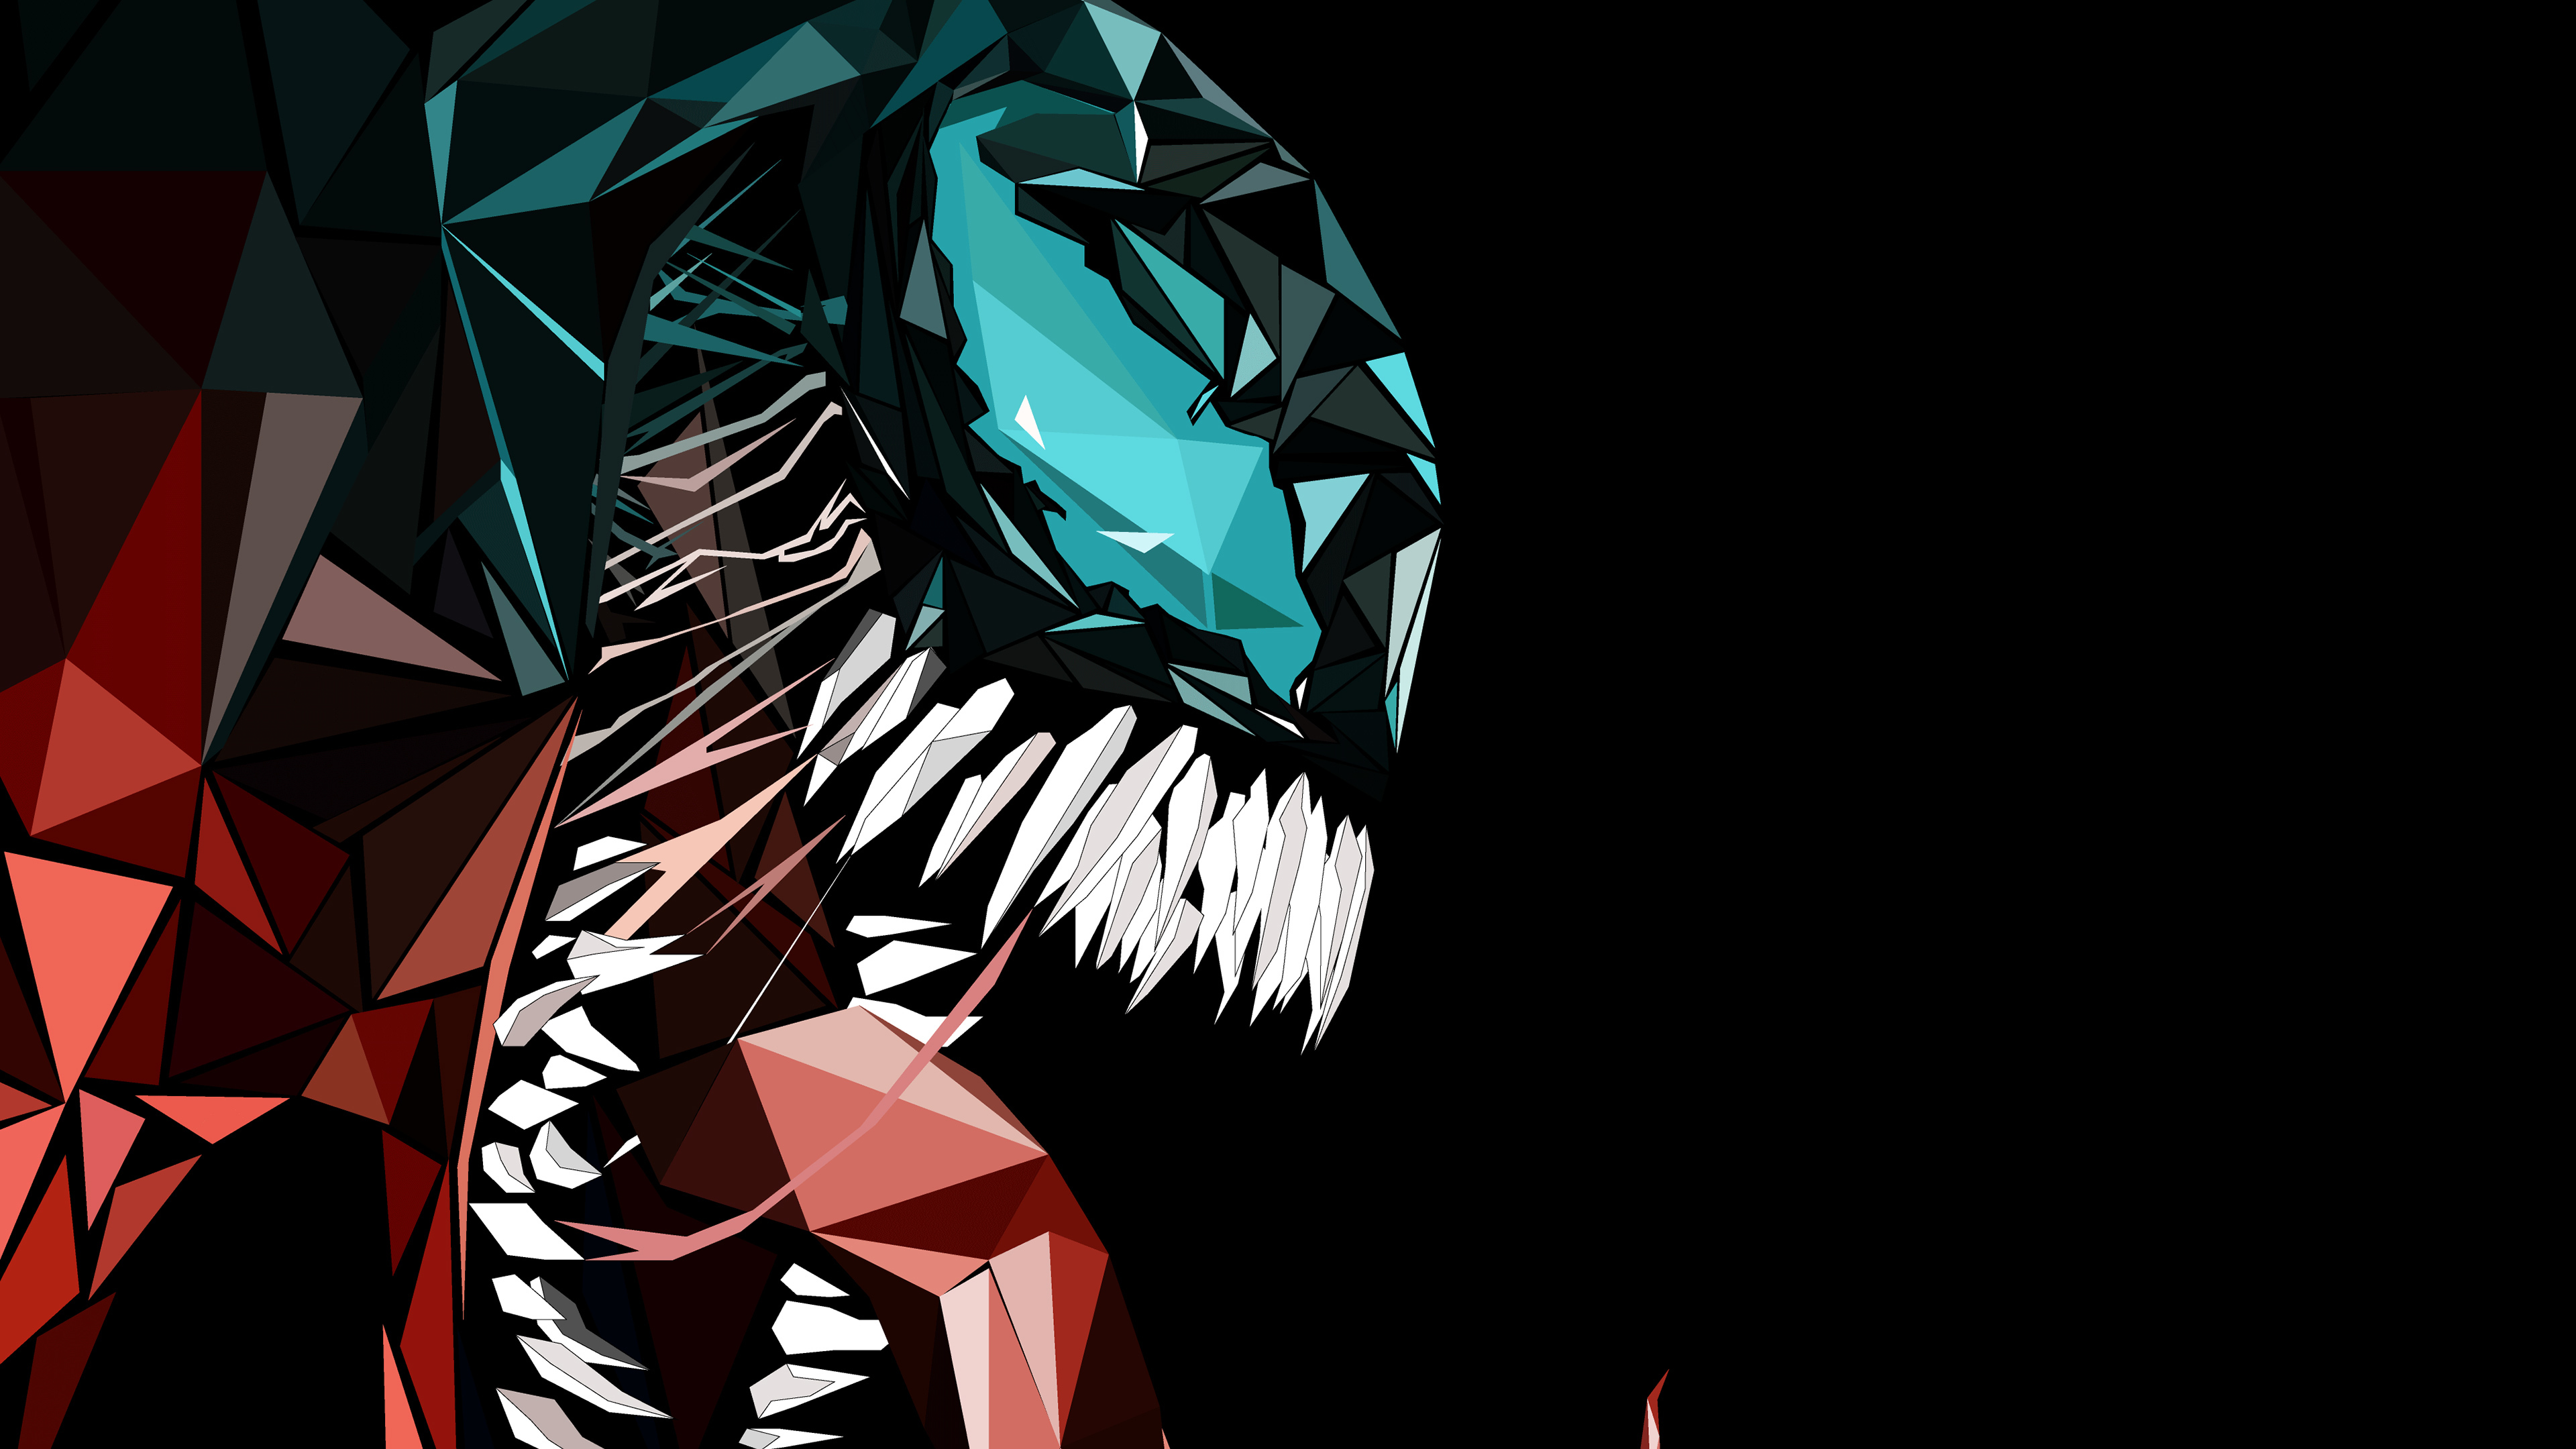 Wallpaper 4k Venom Abstract 4k 4k Wallpapers Artwork Wallpapers